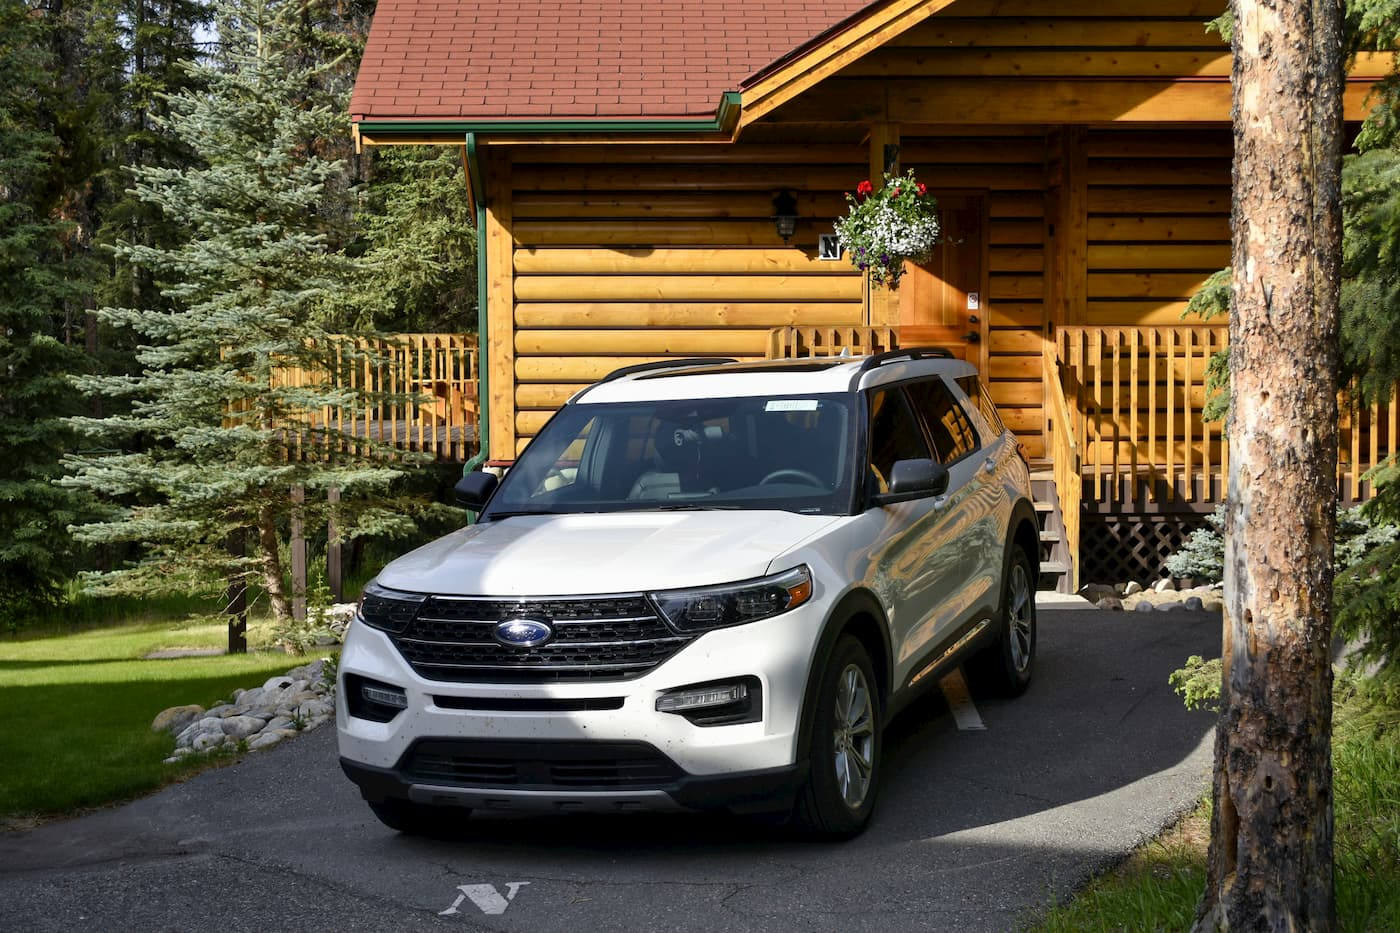 2020 White Ford Explorer Parked Cabin Driveway